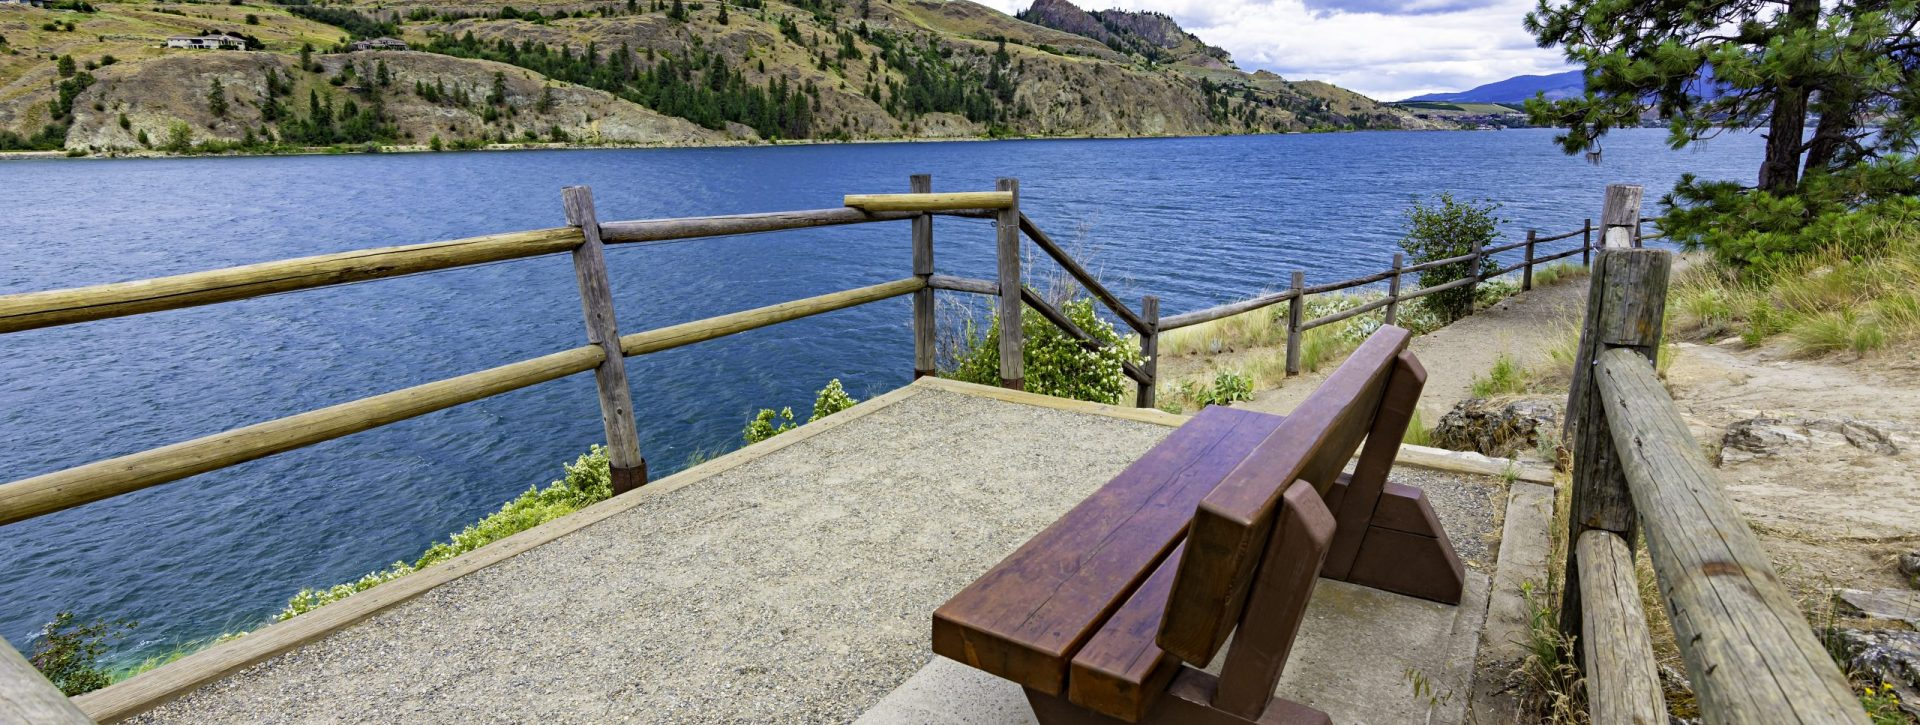 View of a park bench at Kalamalka Lake from Kalamalka Lake Provinial Park near Vernon British Columbia Canada